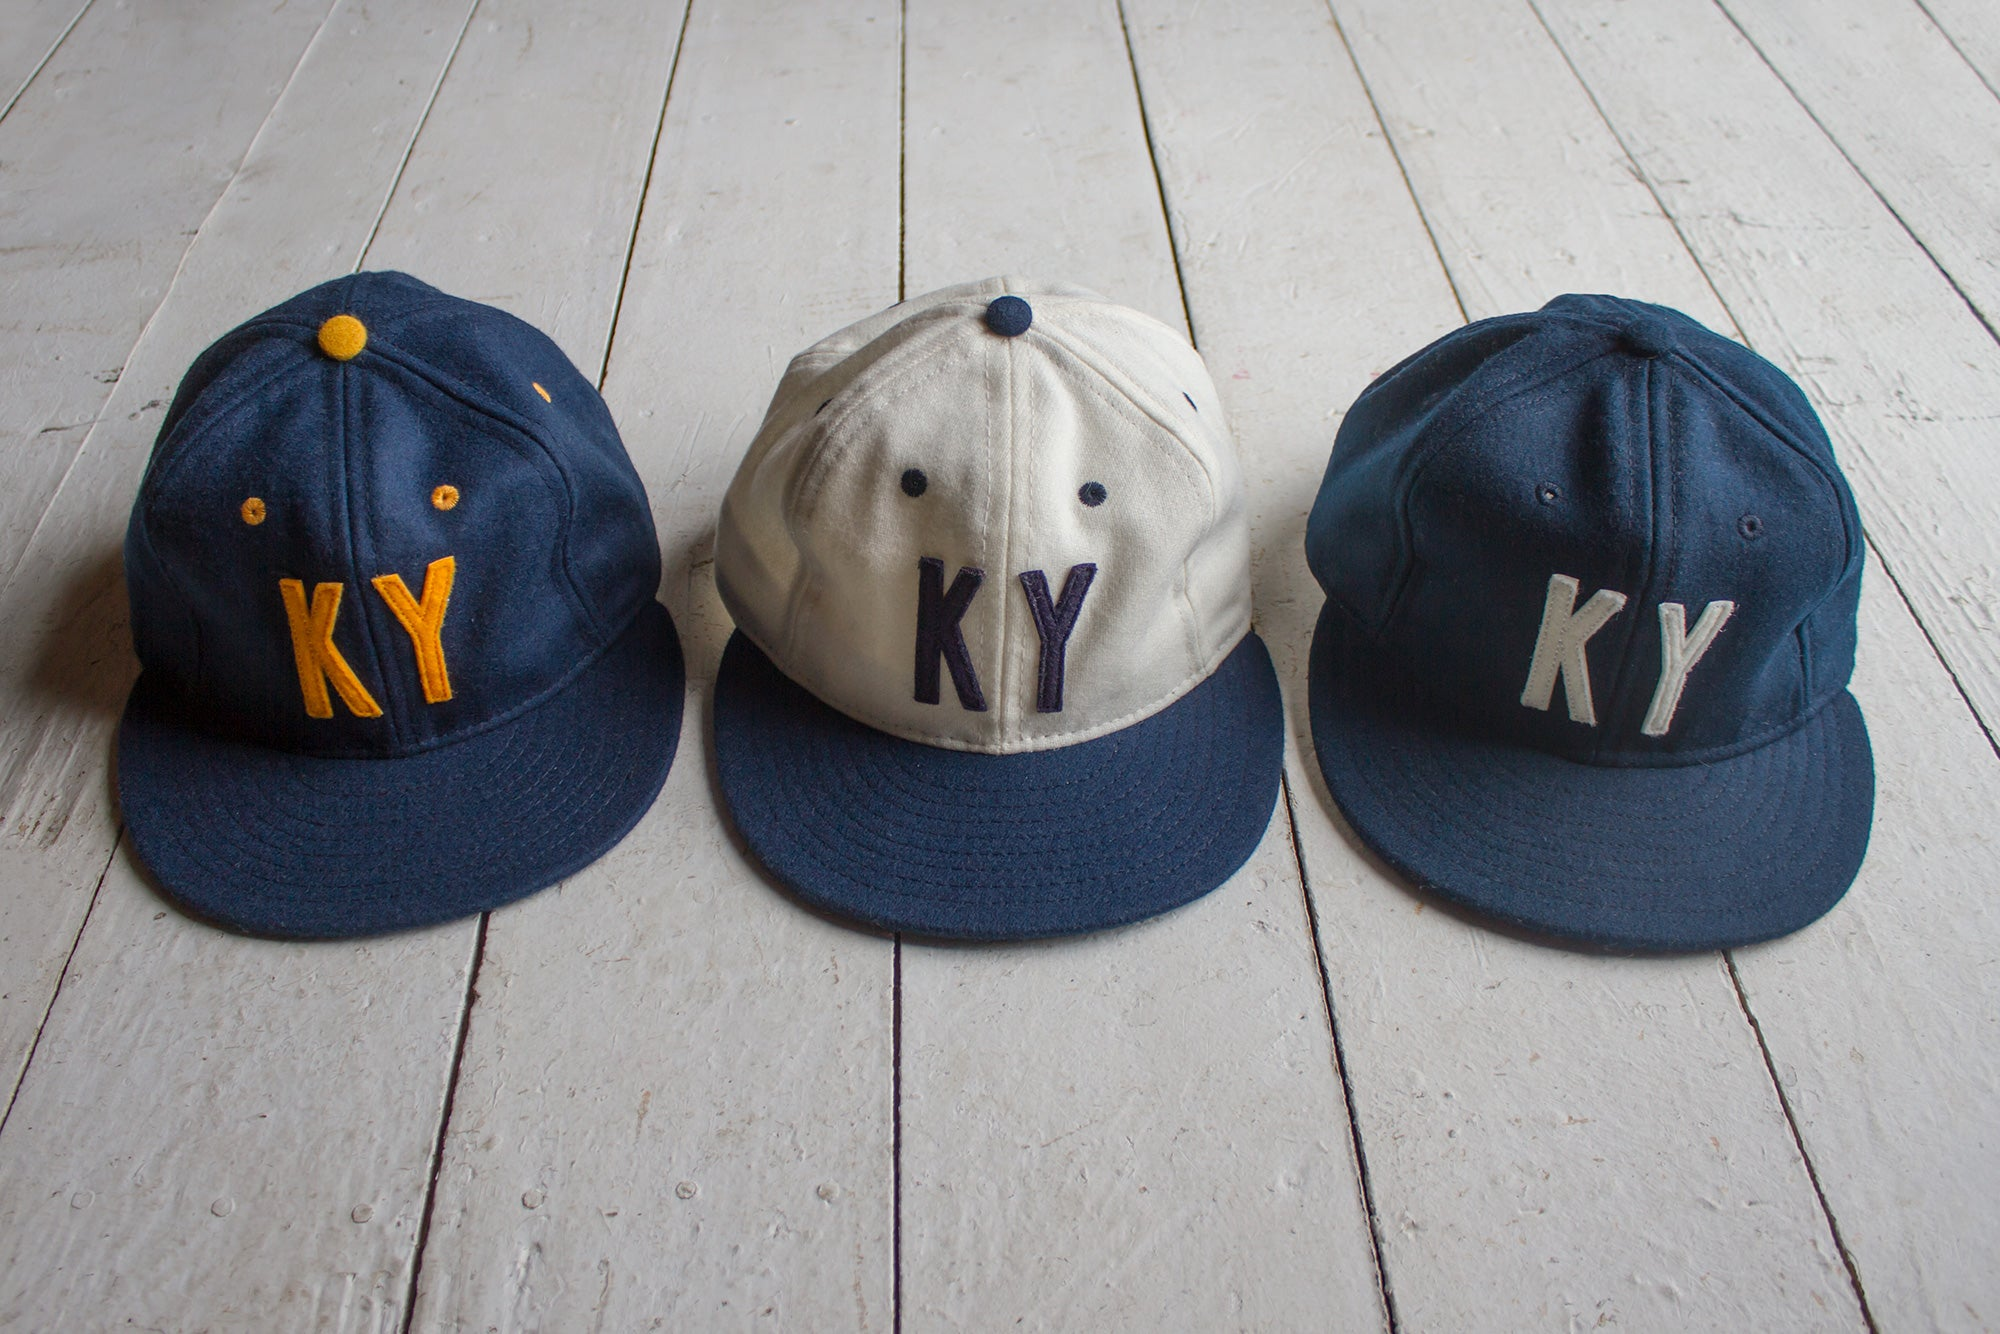 KY Ebbets Hats Are Back